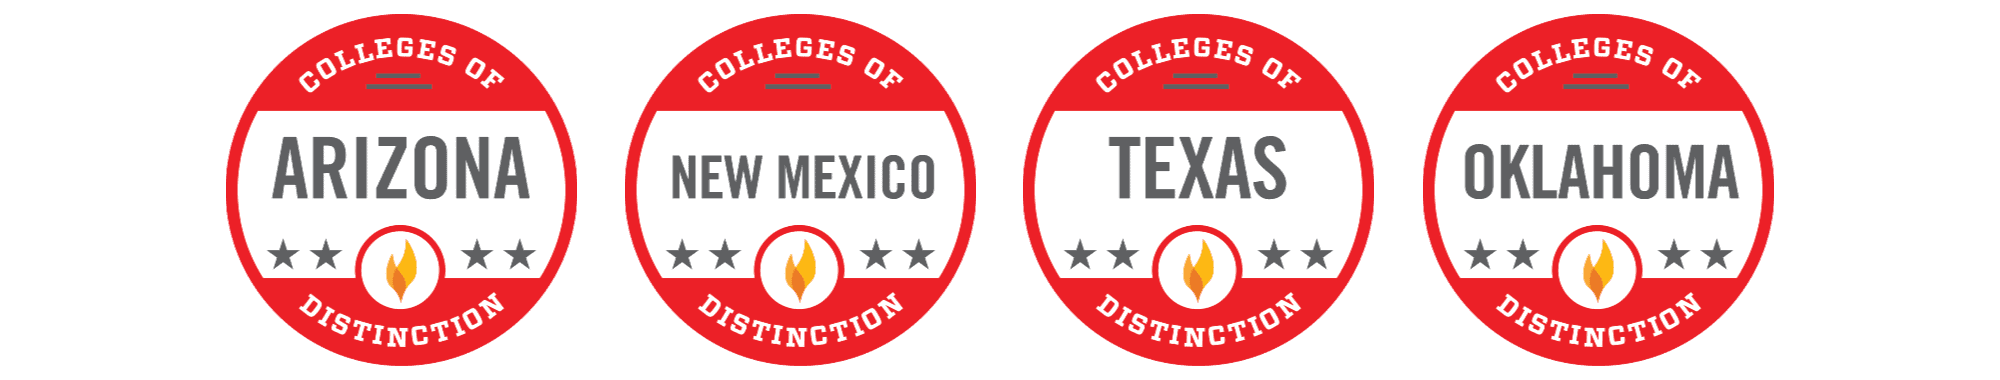 The Best Colleges of Distinction in the Southwest Region